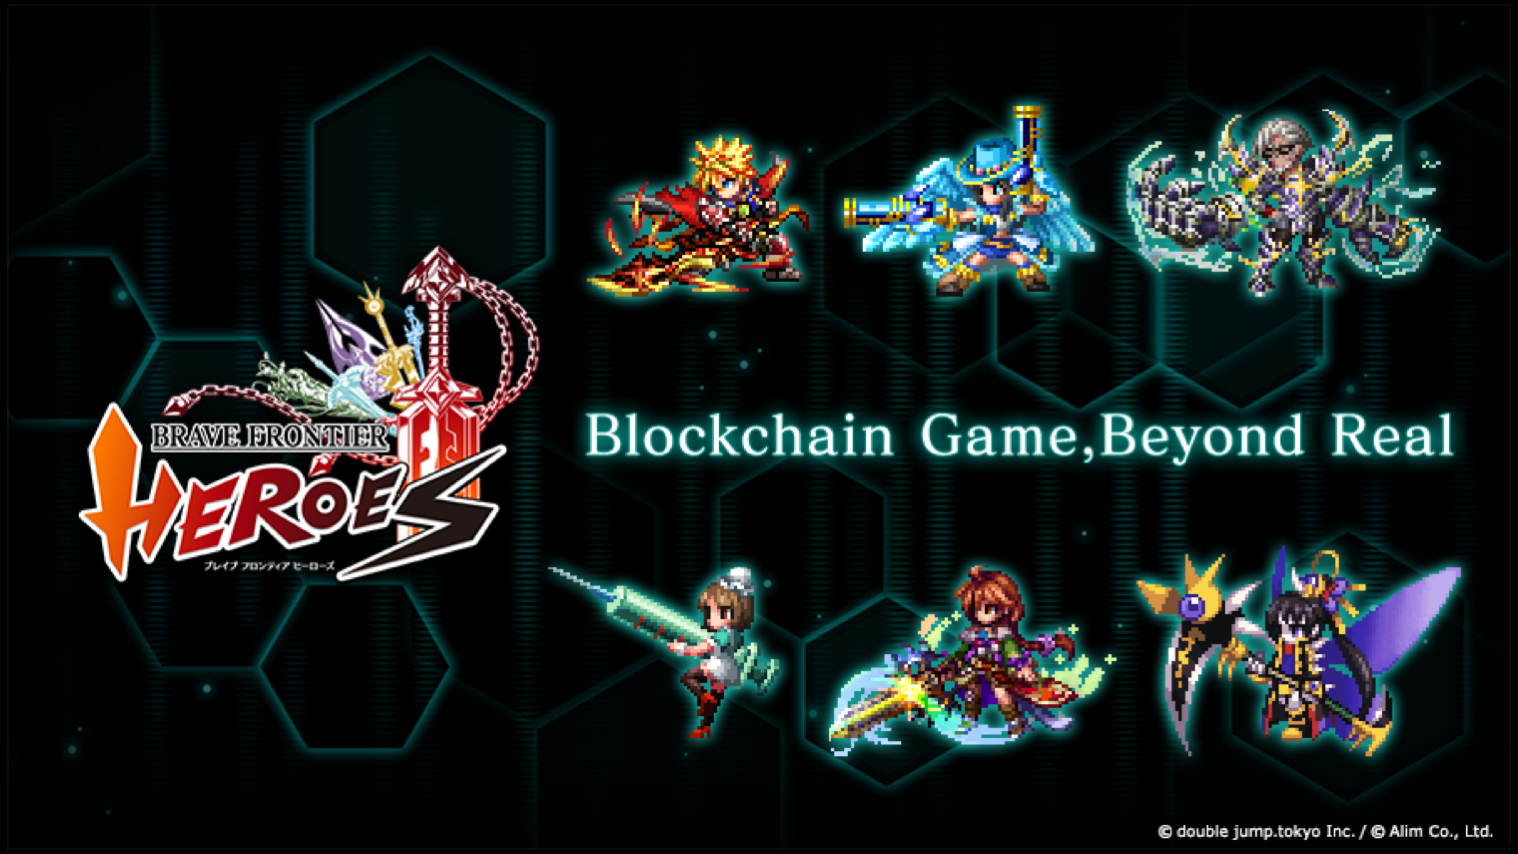 Brave Frontier Heroes BFH MCH My Crypto heroes